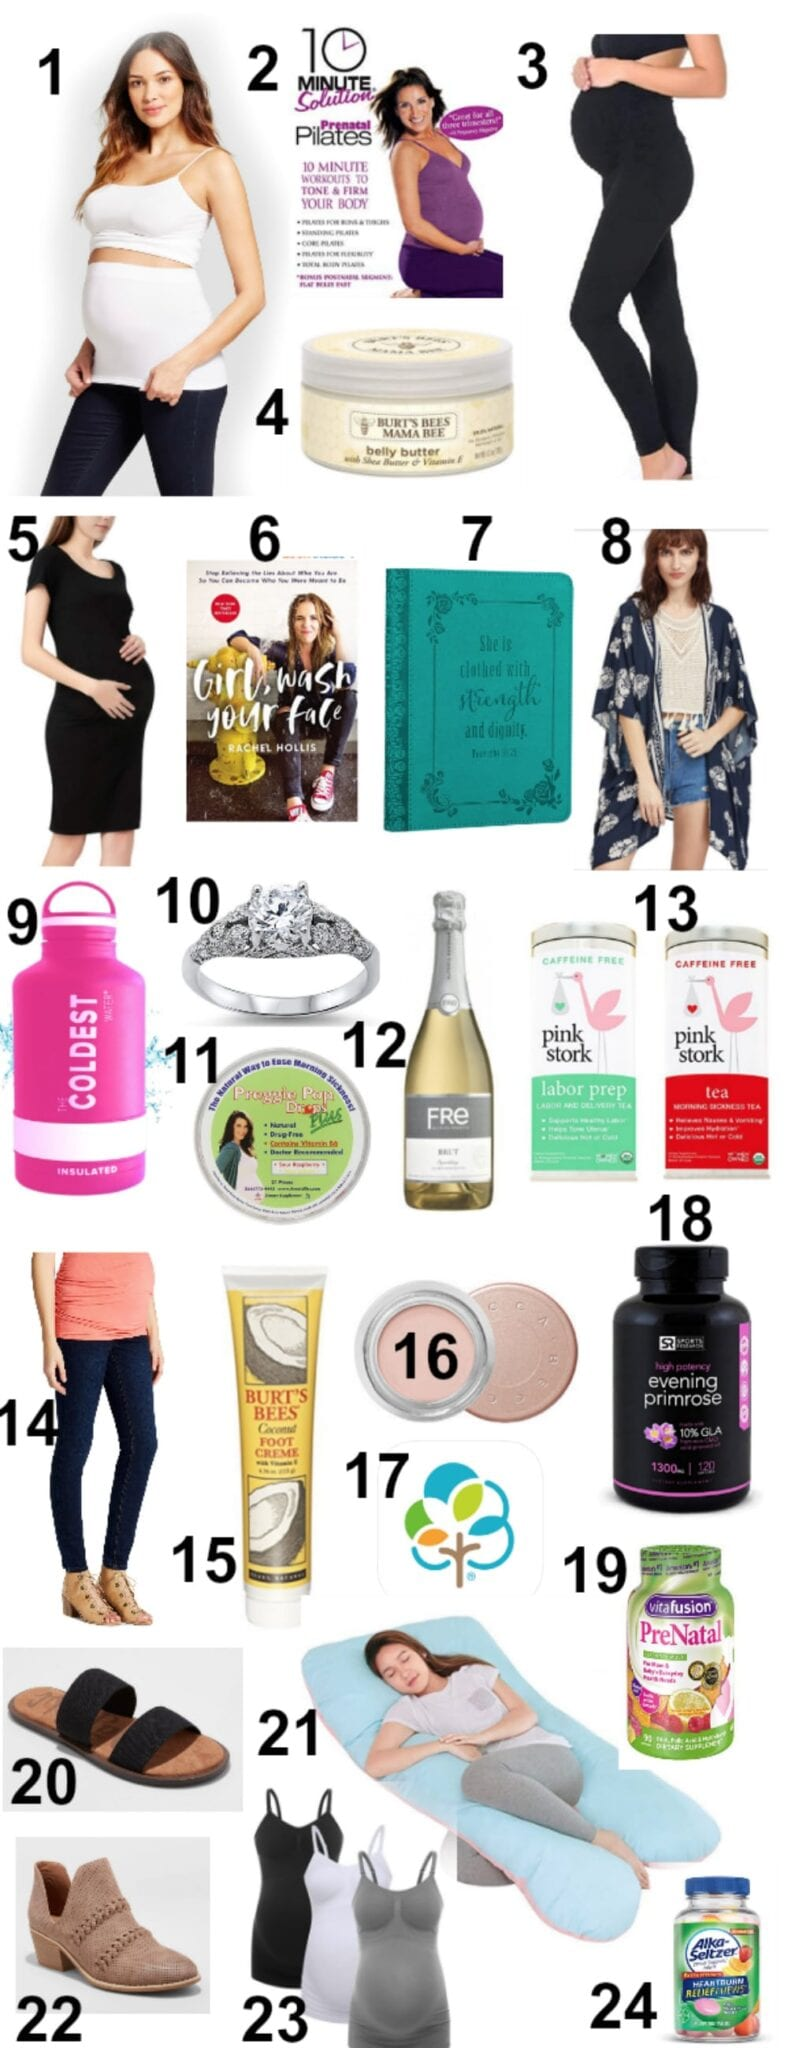 24 tried and true maternity must-haves with fashion, health, beauty, and wellness essentials to make pregnancy easier.